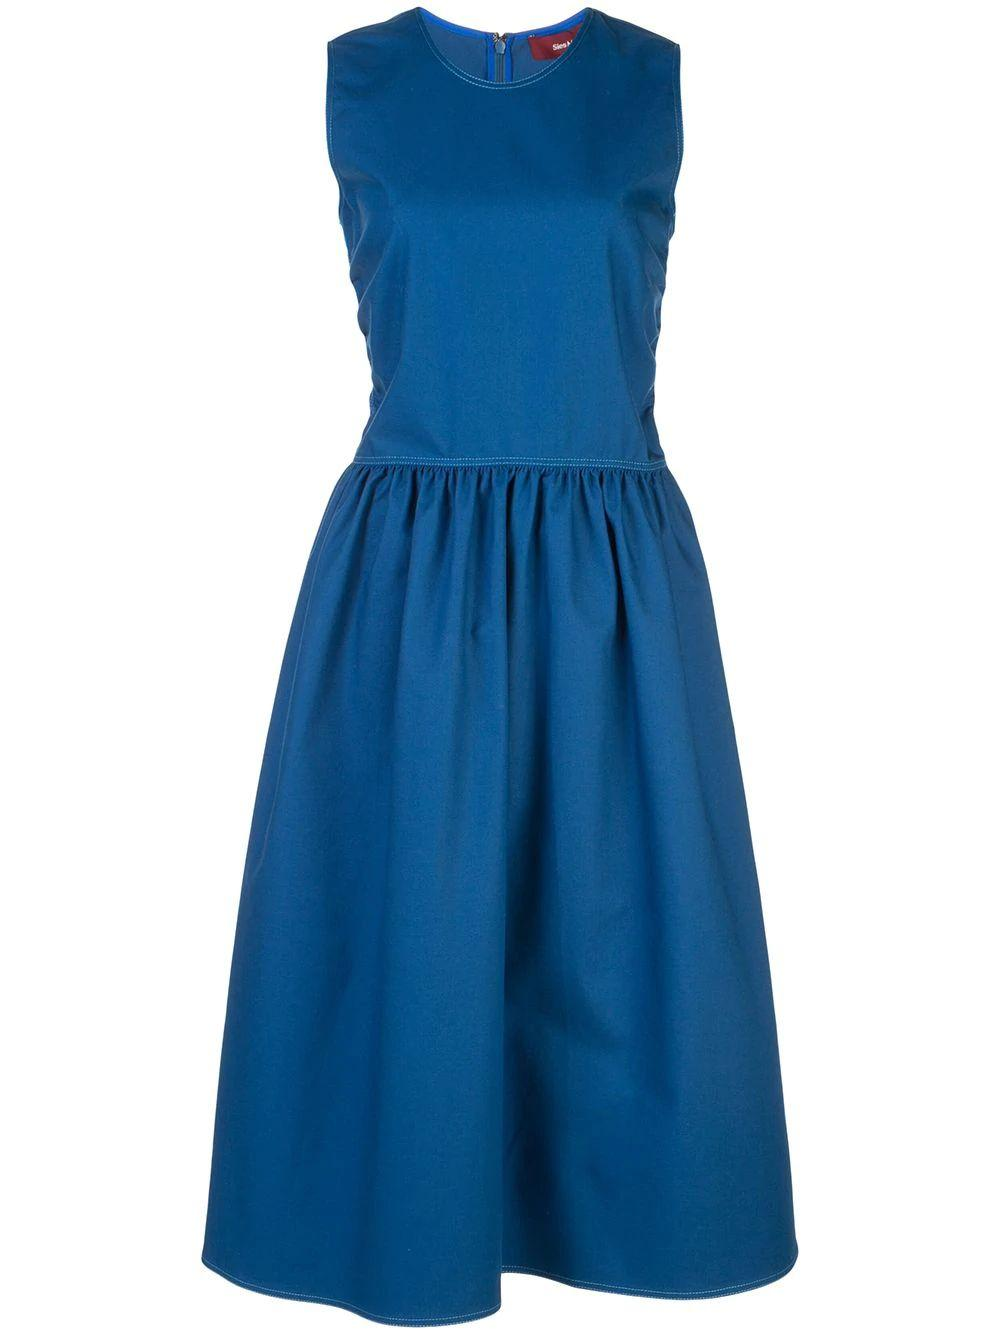 Violetta Sleeveless Stretch Cotton Canvas Dress Item # 15OF5239-19116